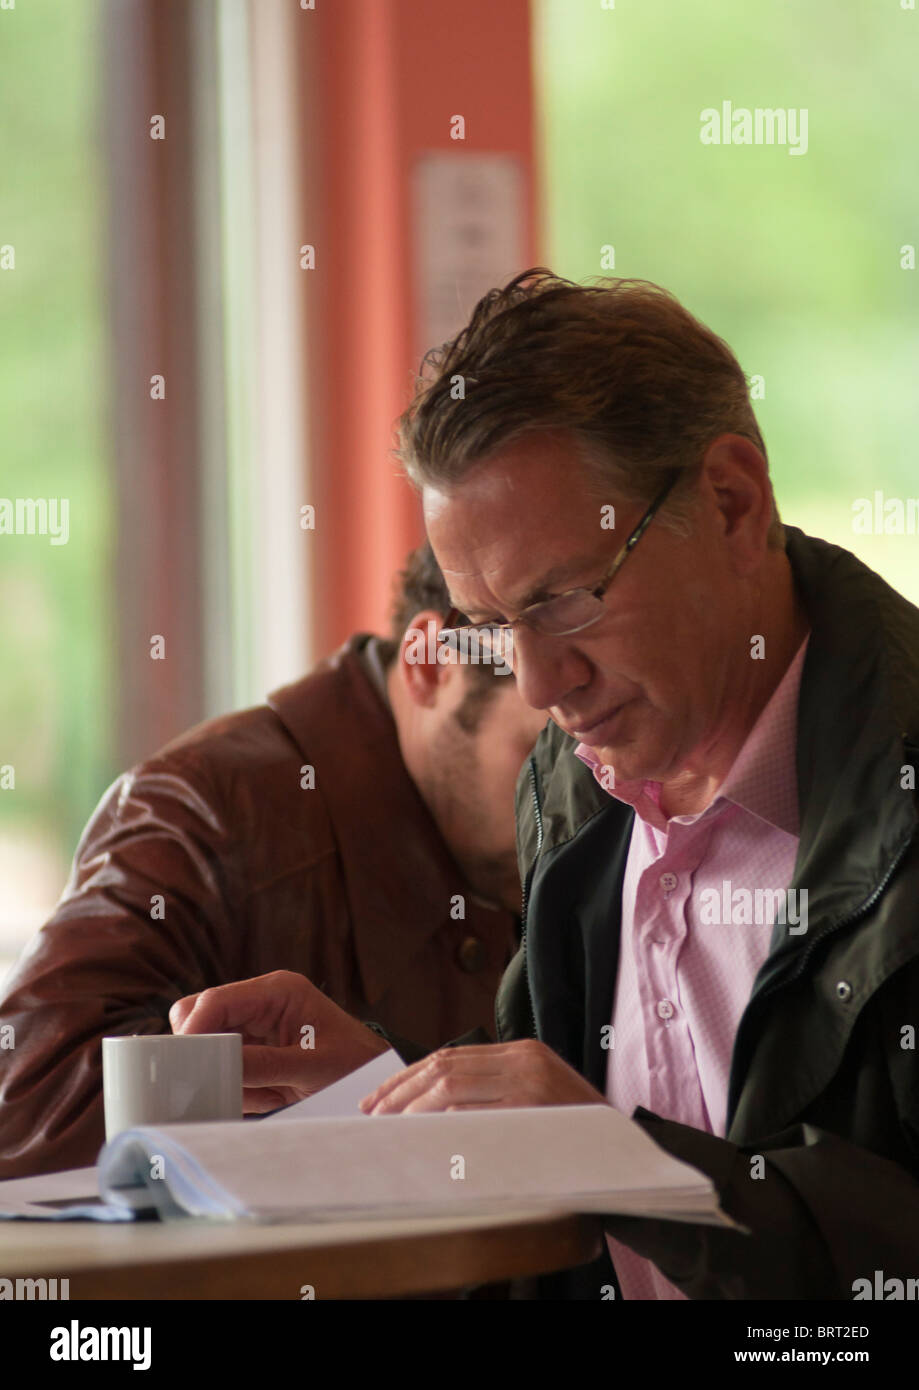 Michael Portillo, Conservative politician and TV personality, relaxing with a cup of coffee. - Stock Image